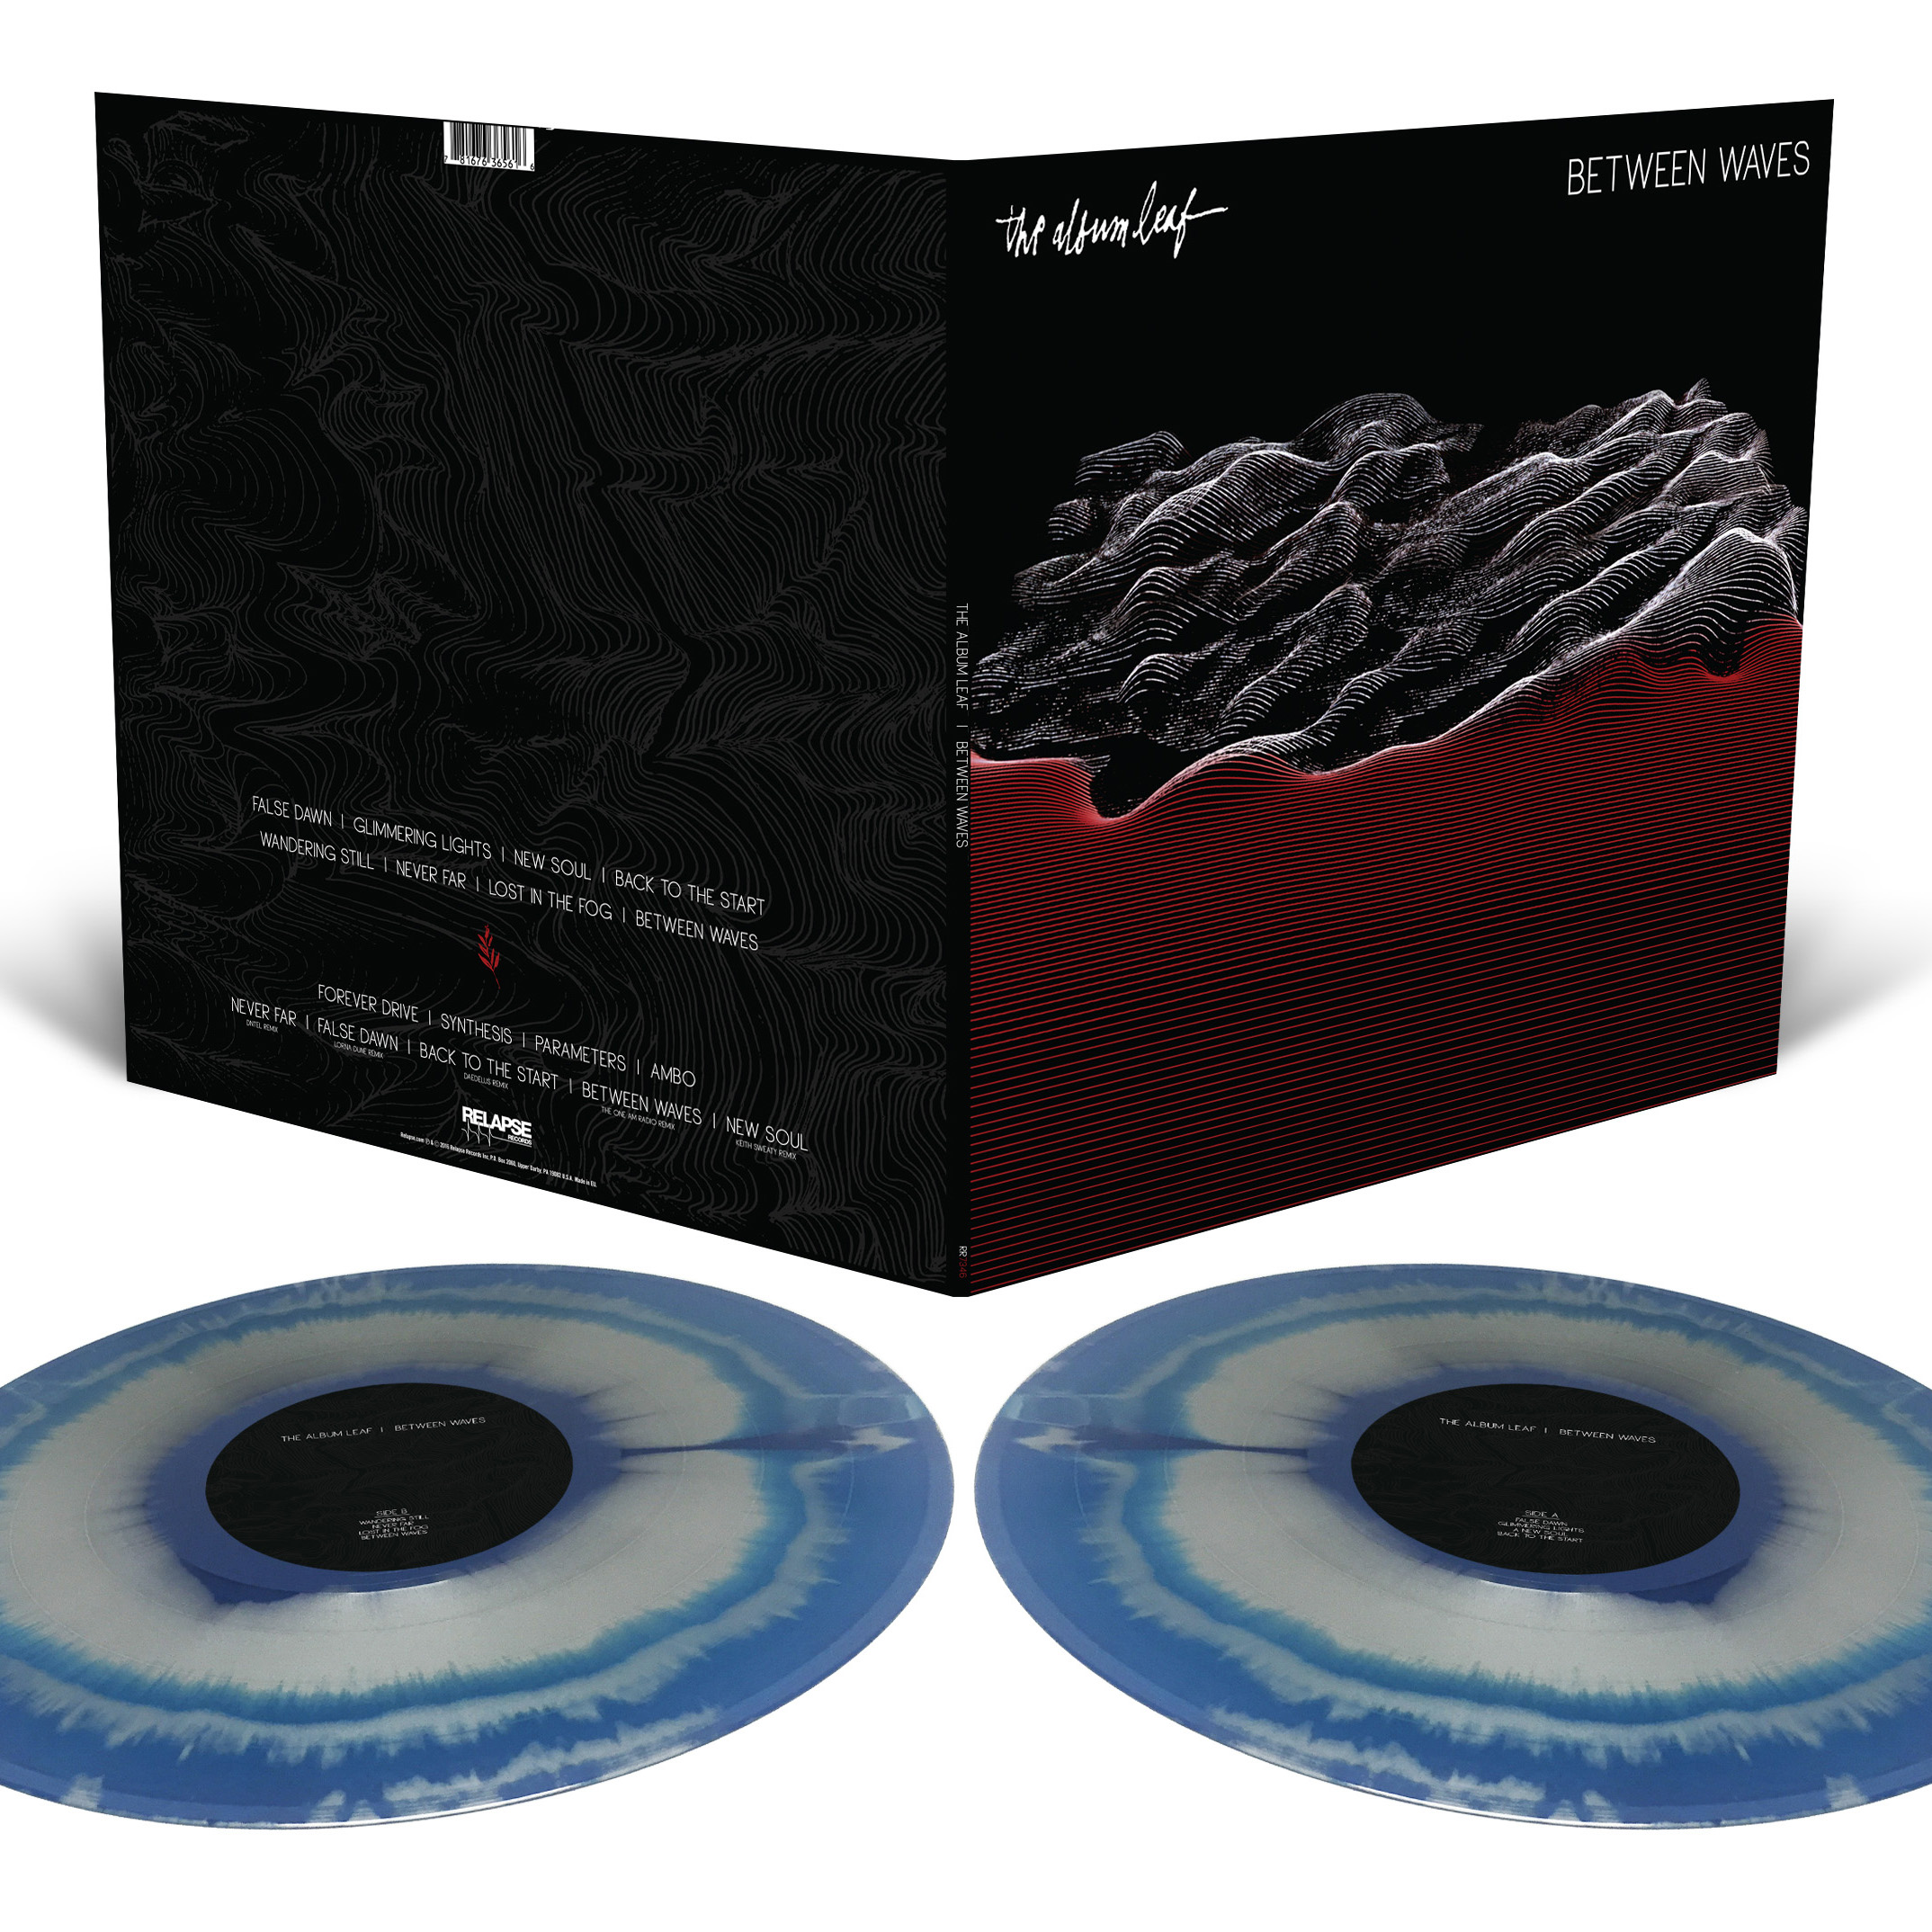 Between Waves Deluxe